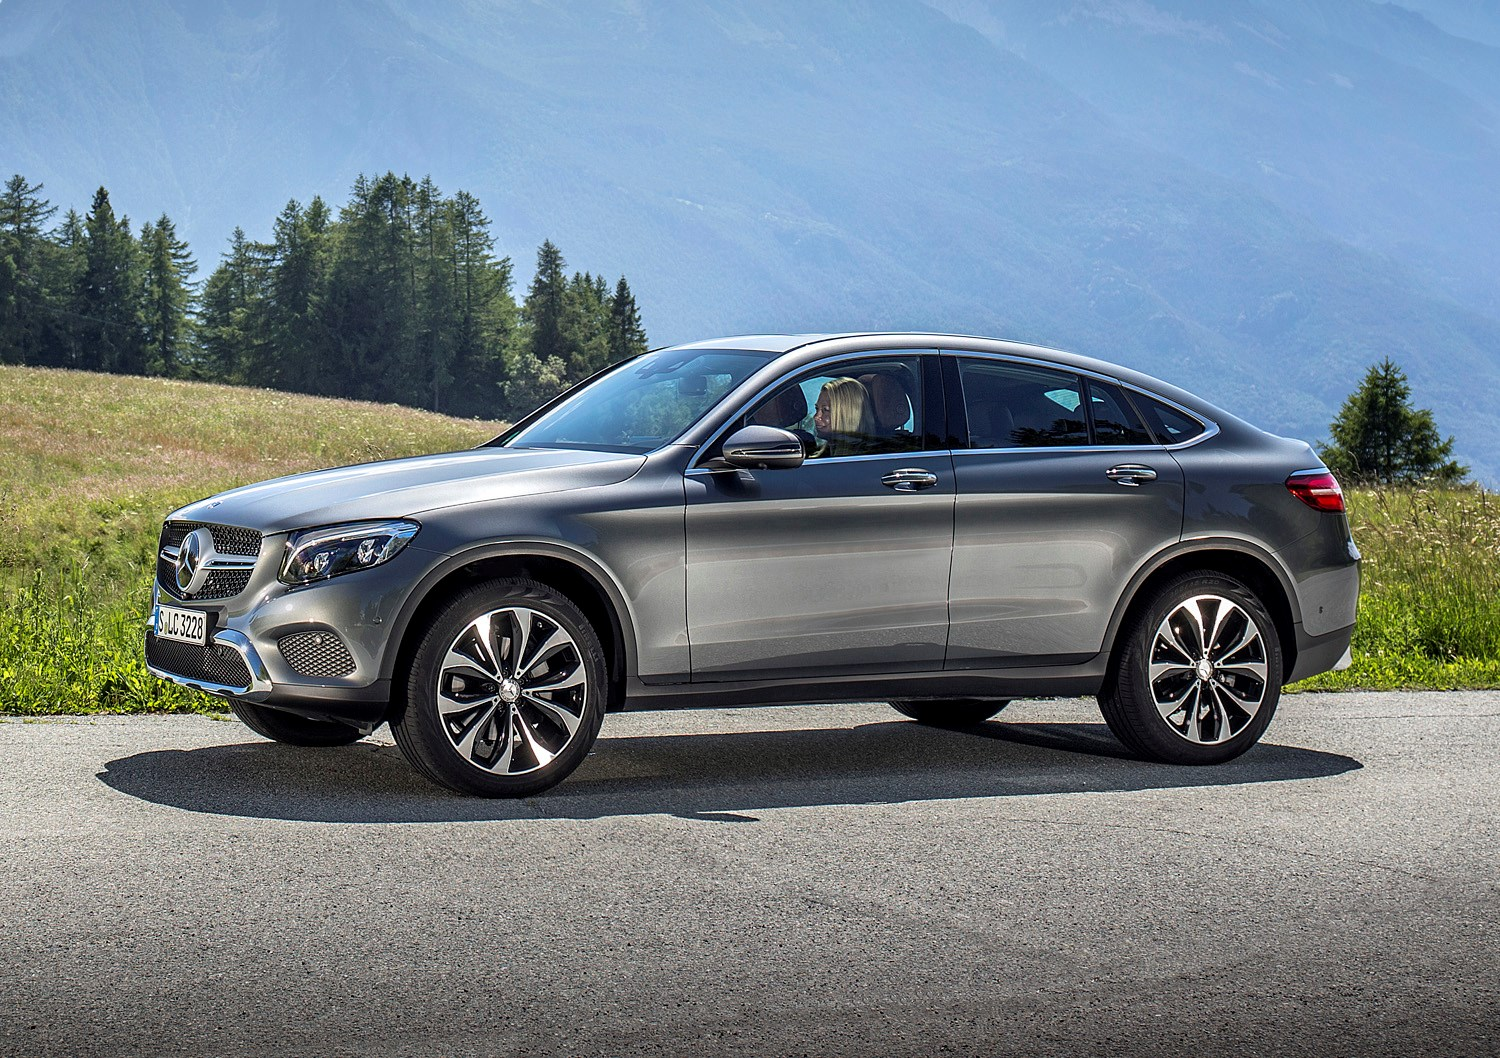 Mercedes Glc Coupe 250d Side Grey